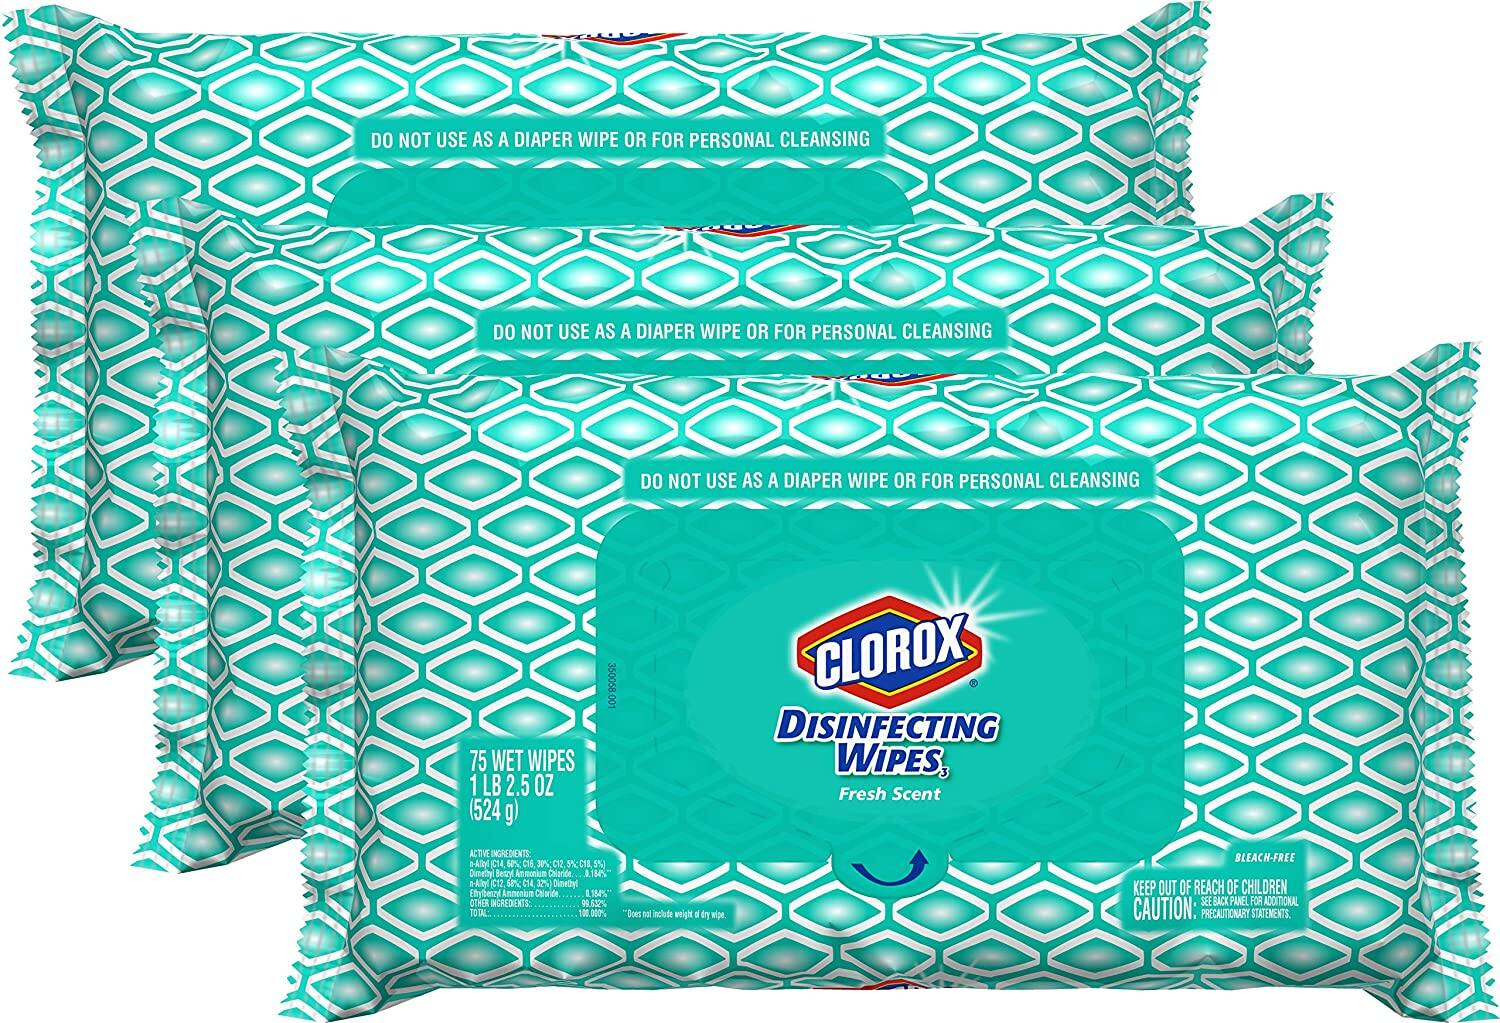 Amazon.com: Clorox Disinfecting Bleach Free Cleaning Wipes, 75 Wipes, Pack of 3 $14.99 ($0.07 / count)